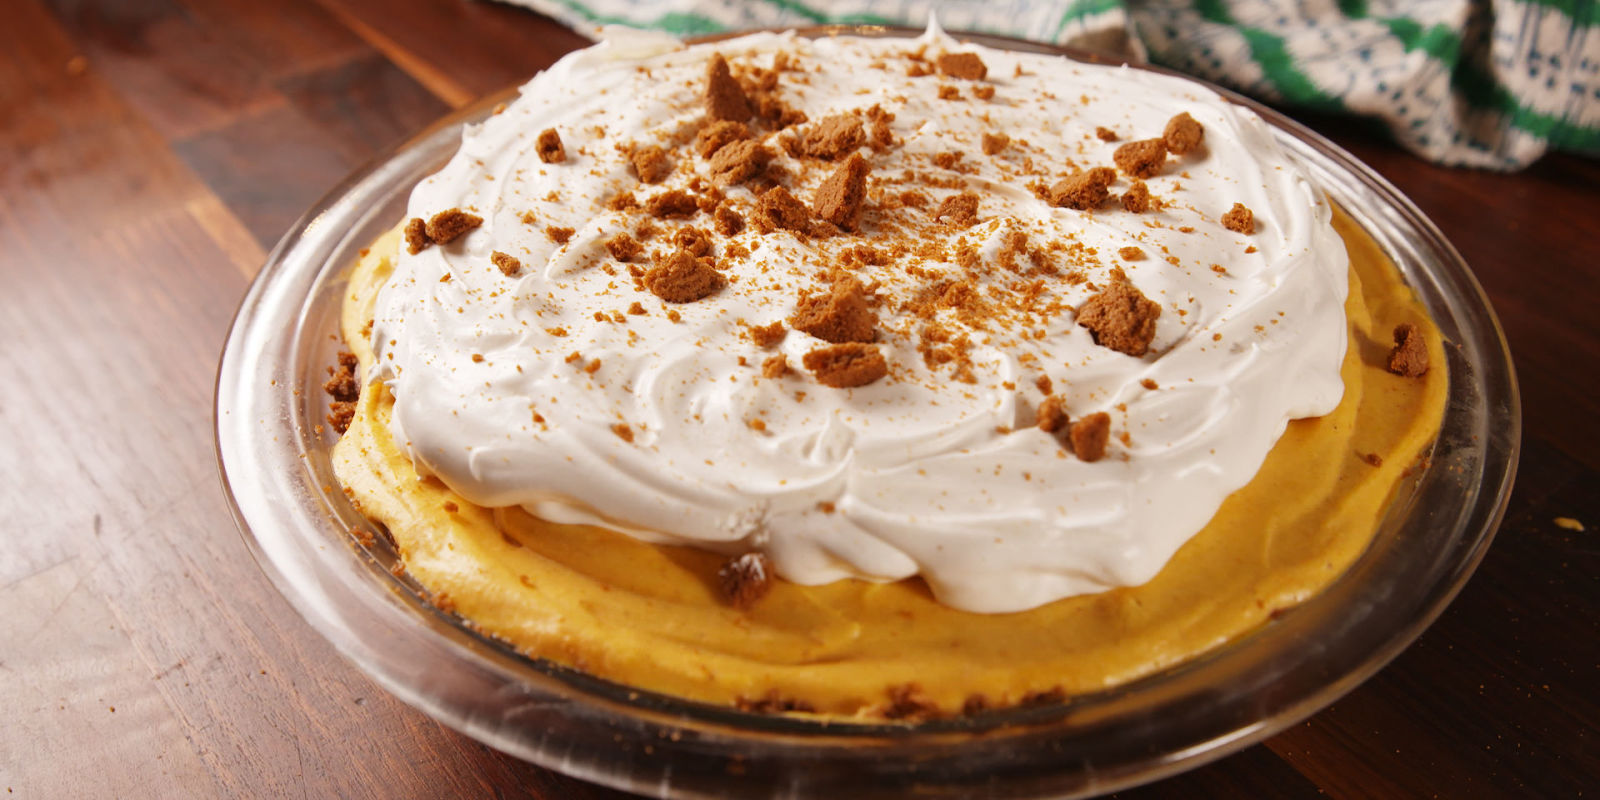 Best Pumpkin Cream Pie Recipe - How To Make Pumpkin Cream ...